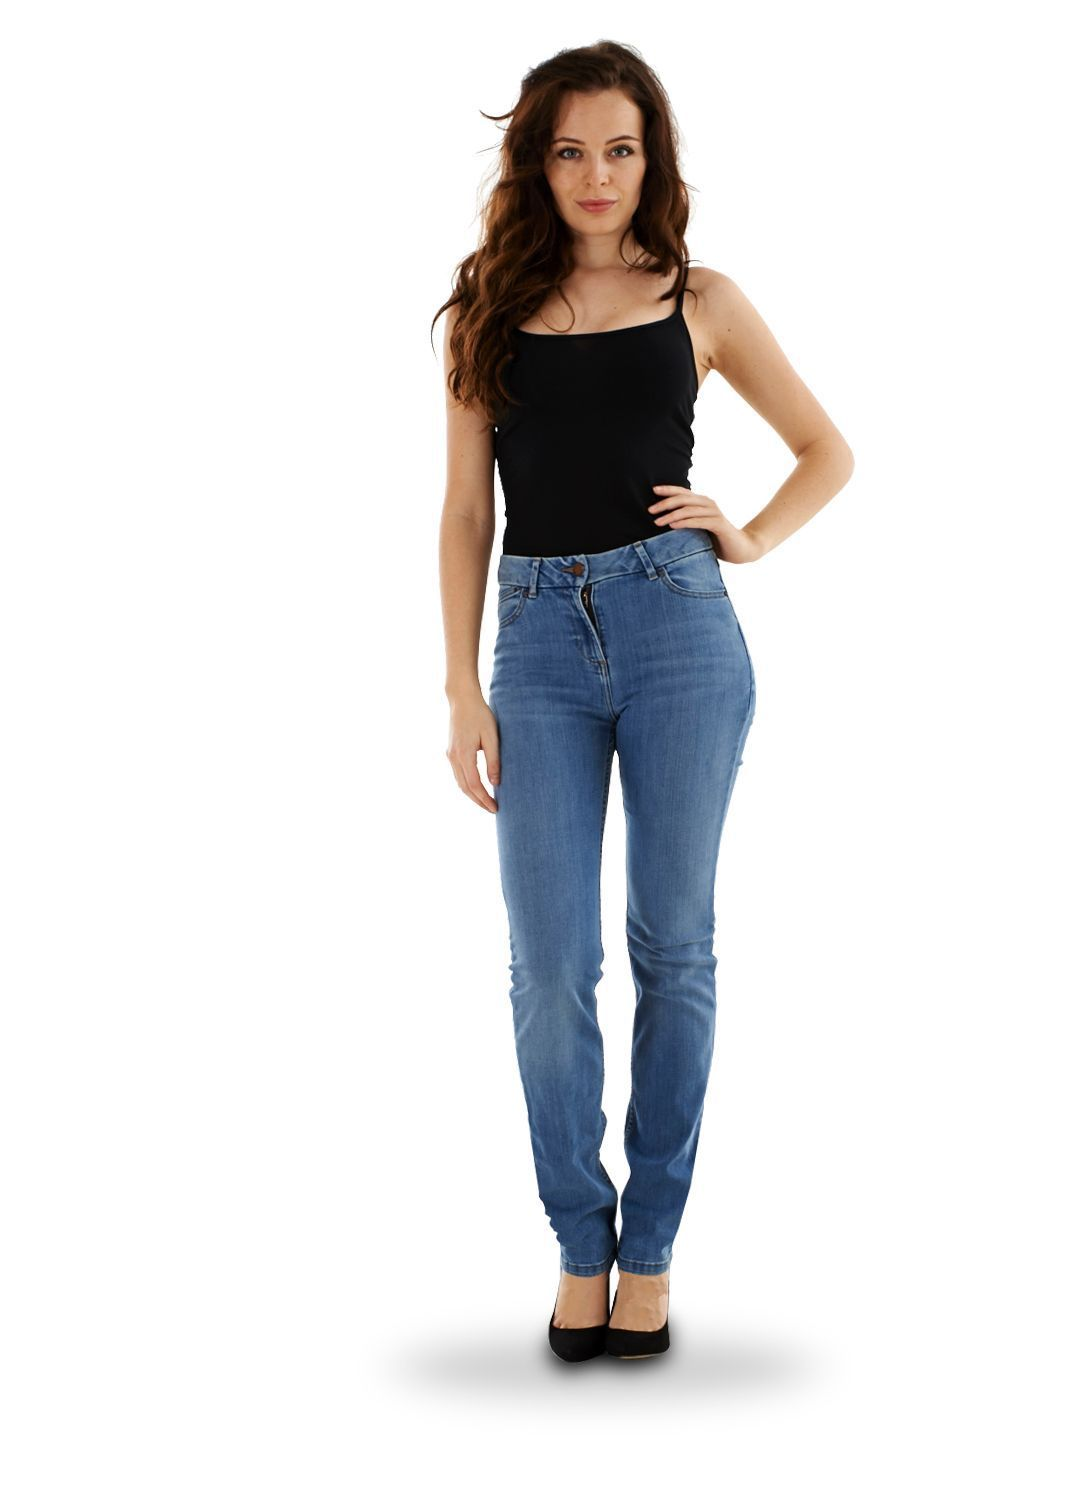 Comments about wrangler Women's Straight Leg Jean: I love the simple design. Can wear them to work or wherever. They fit great - no waist gap, are slimming through the thigh. The seams lay flat. The 30